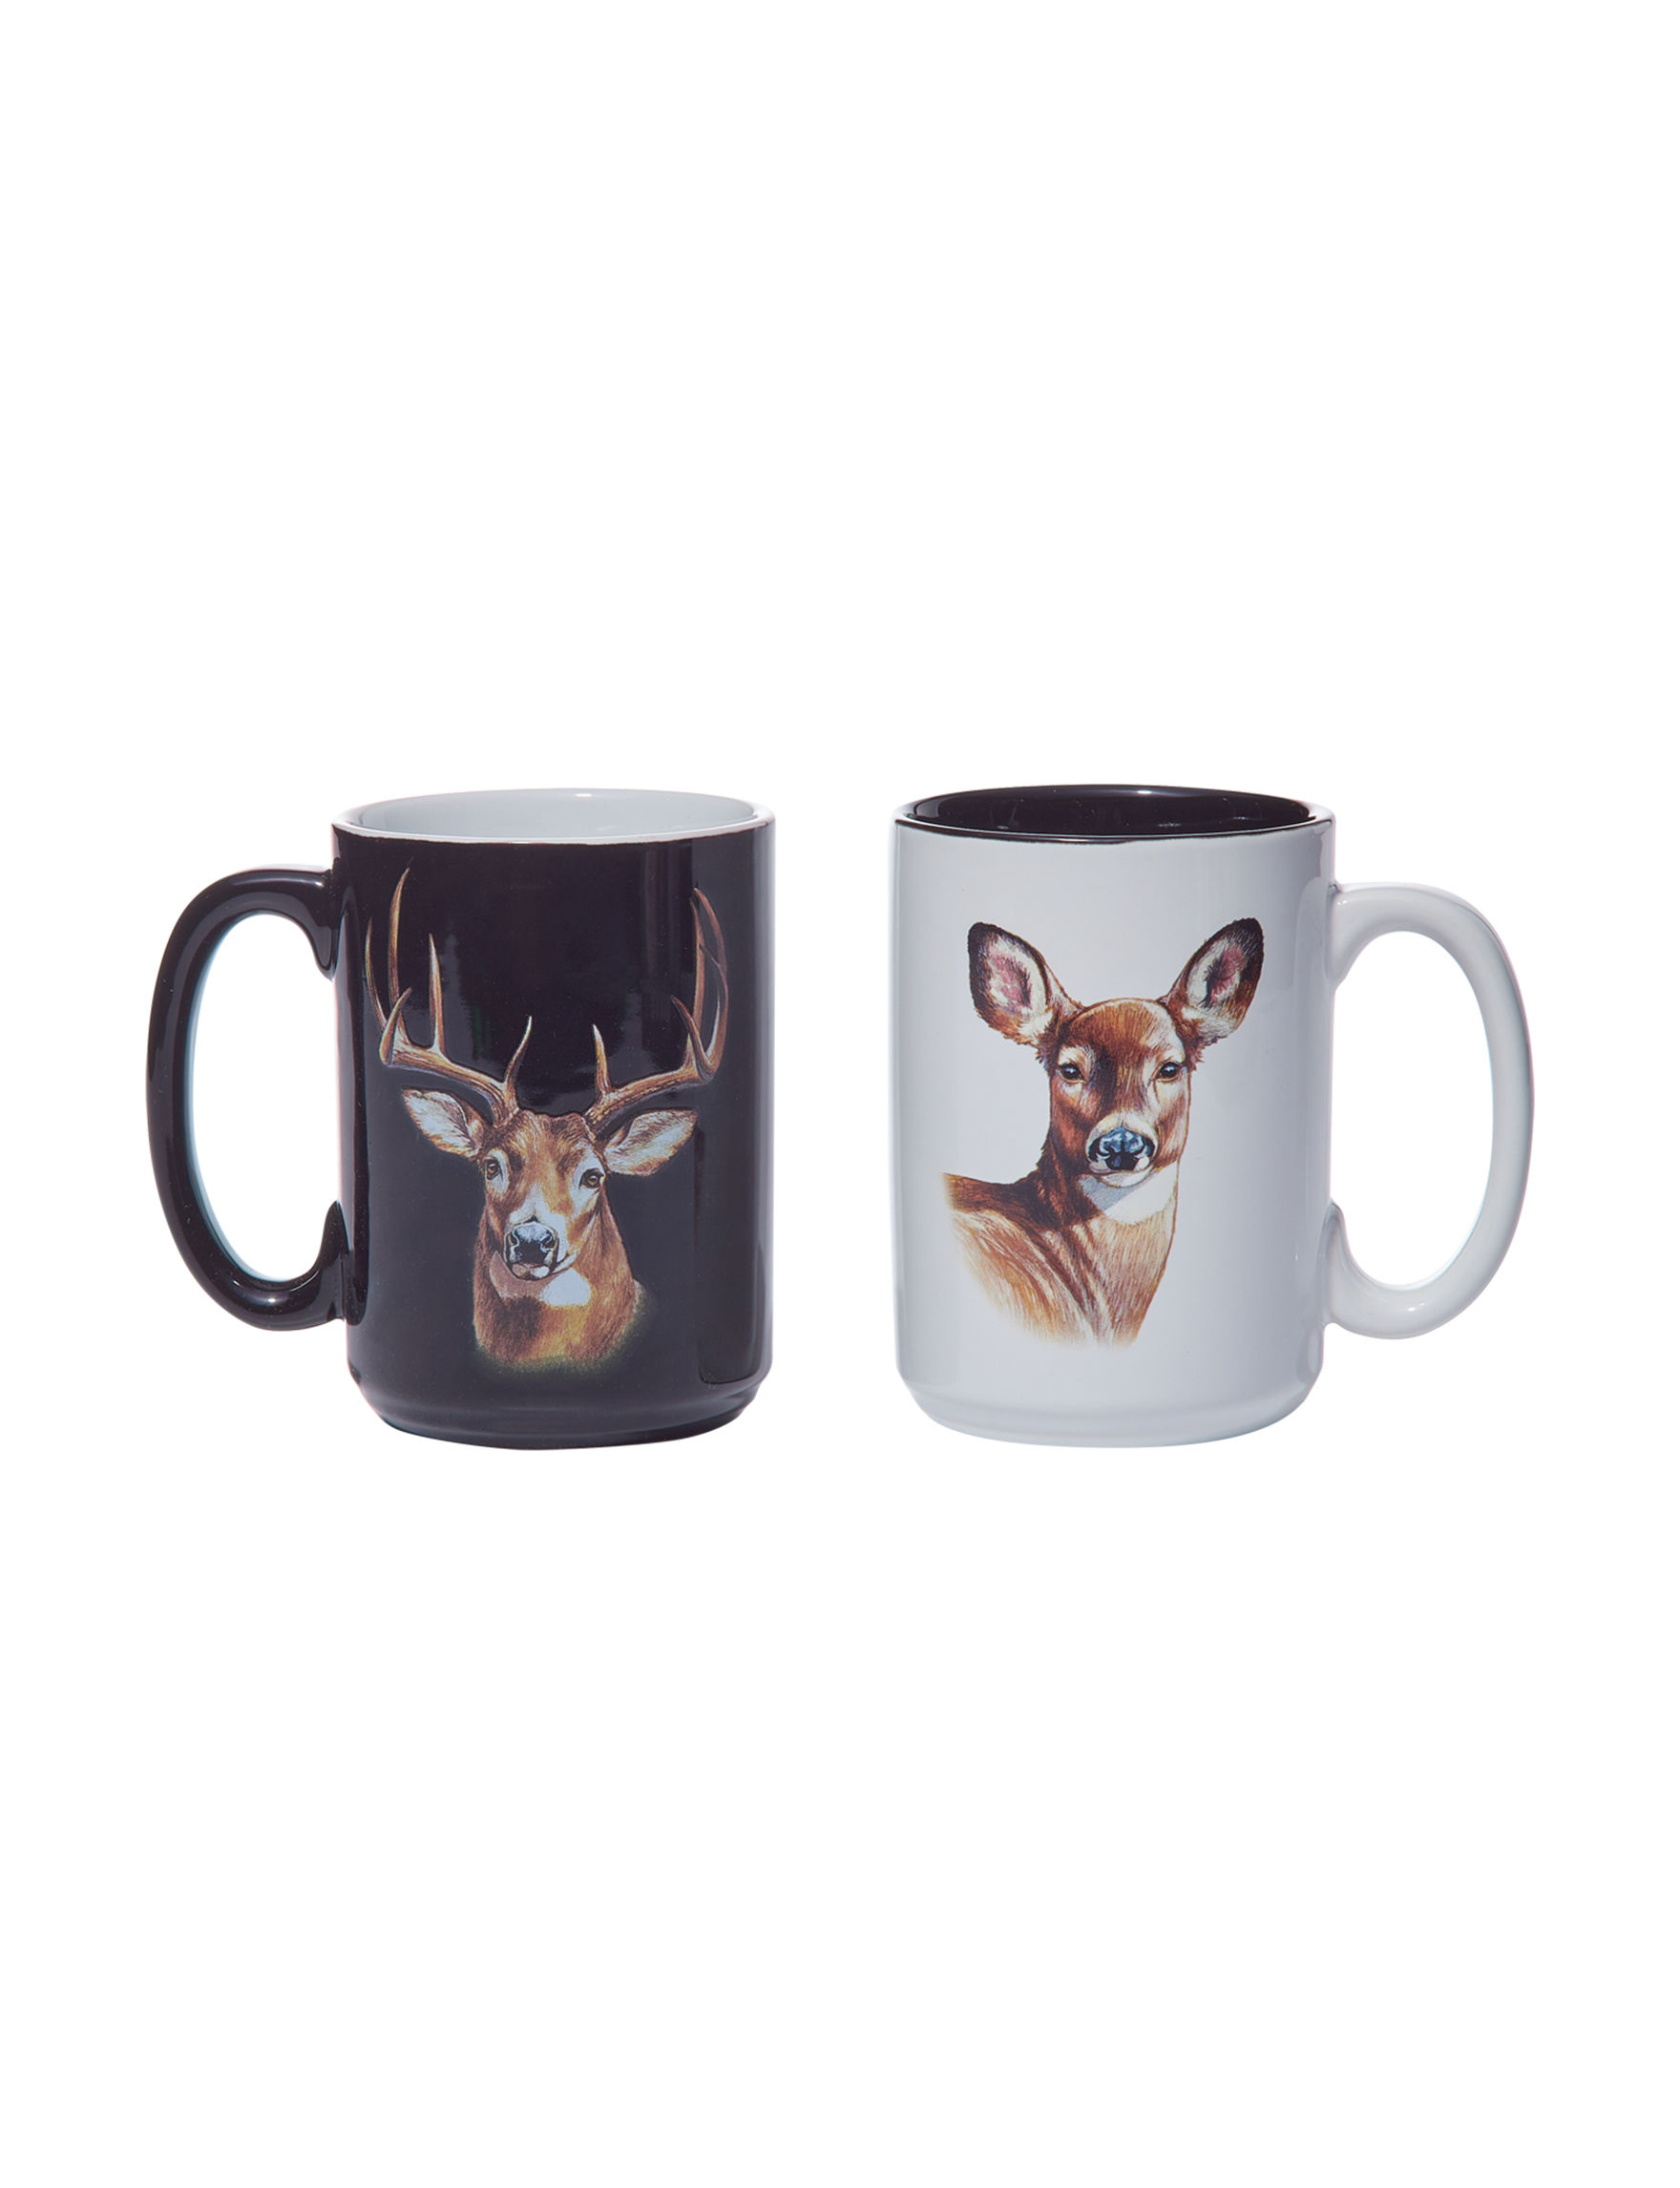 American Expedition White / Black Mugs Drinkware